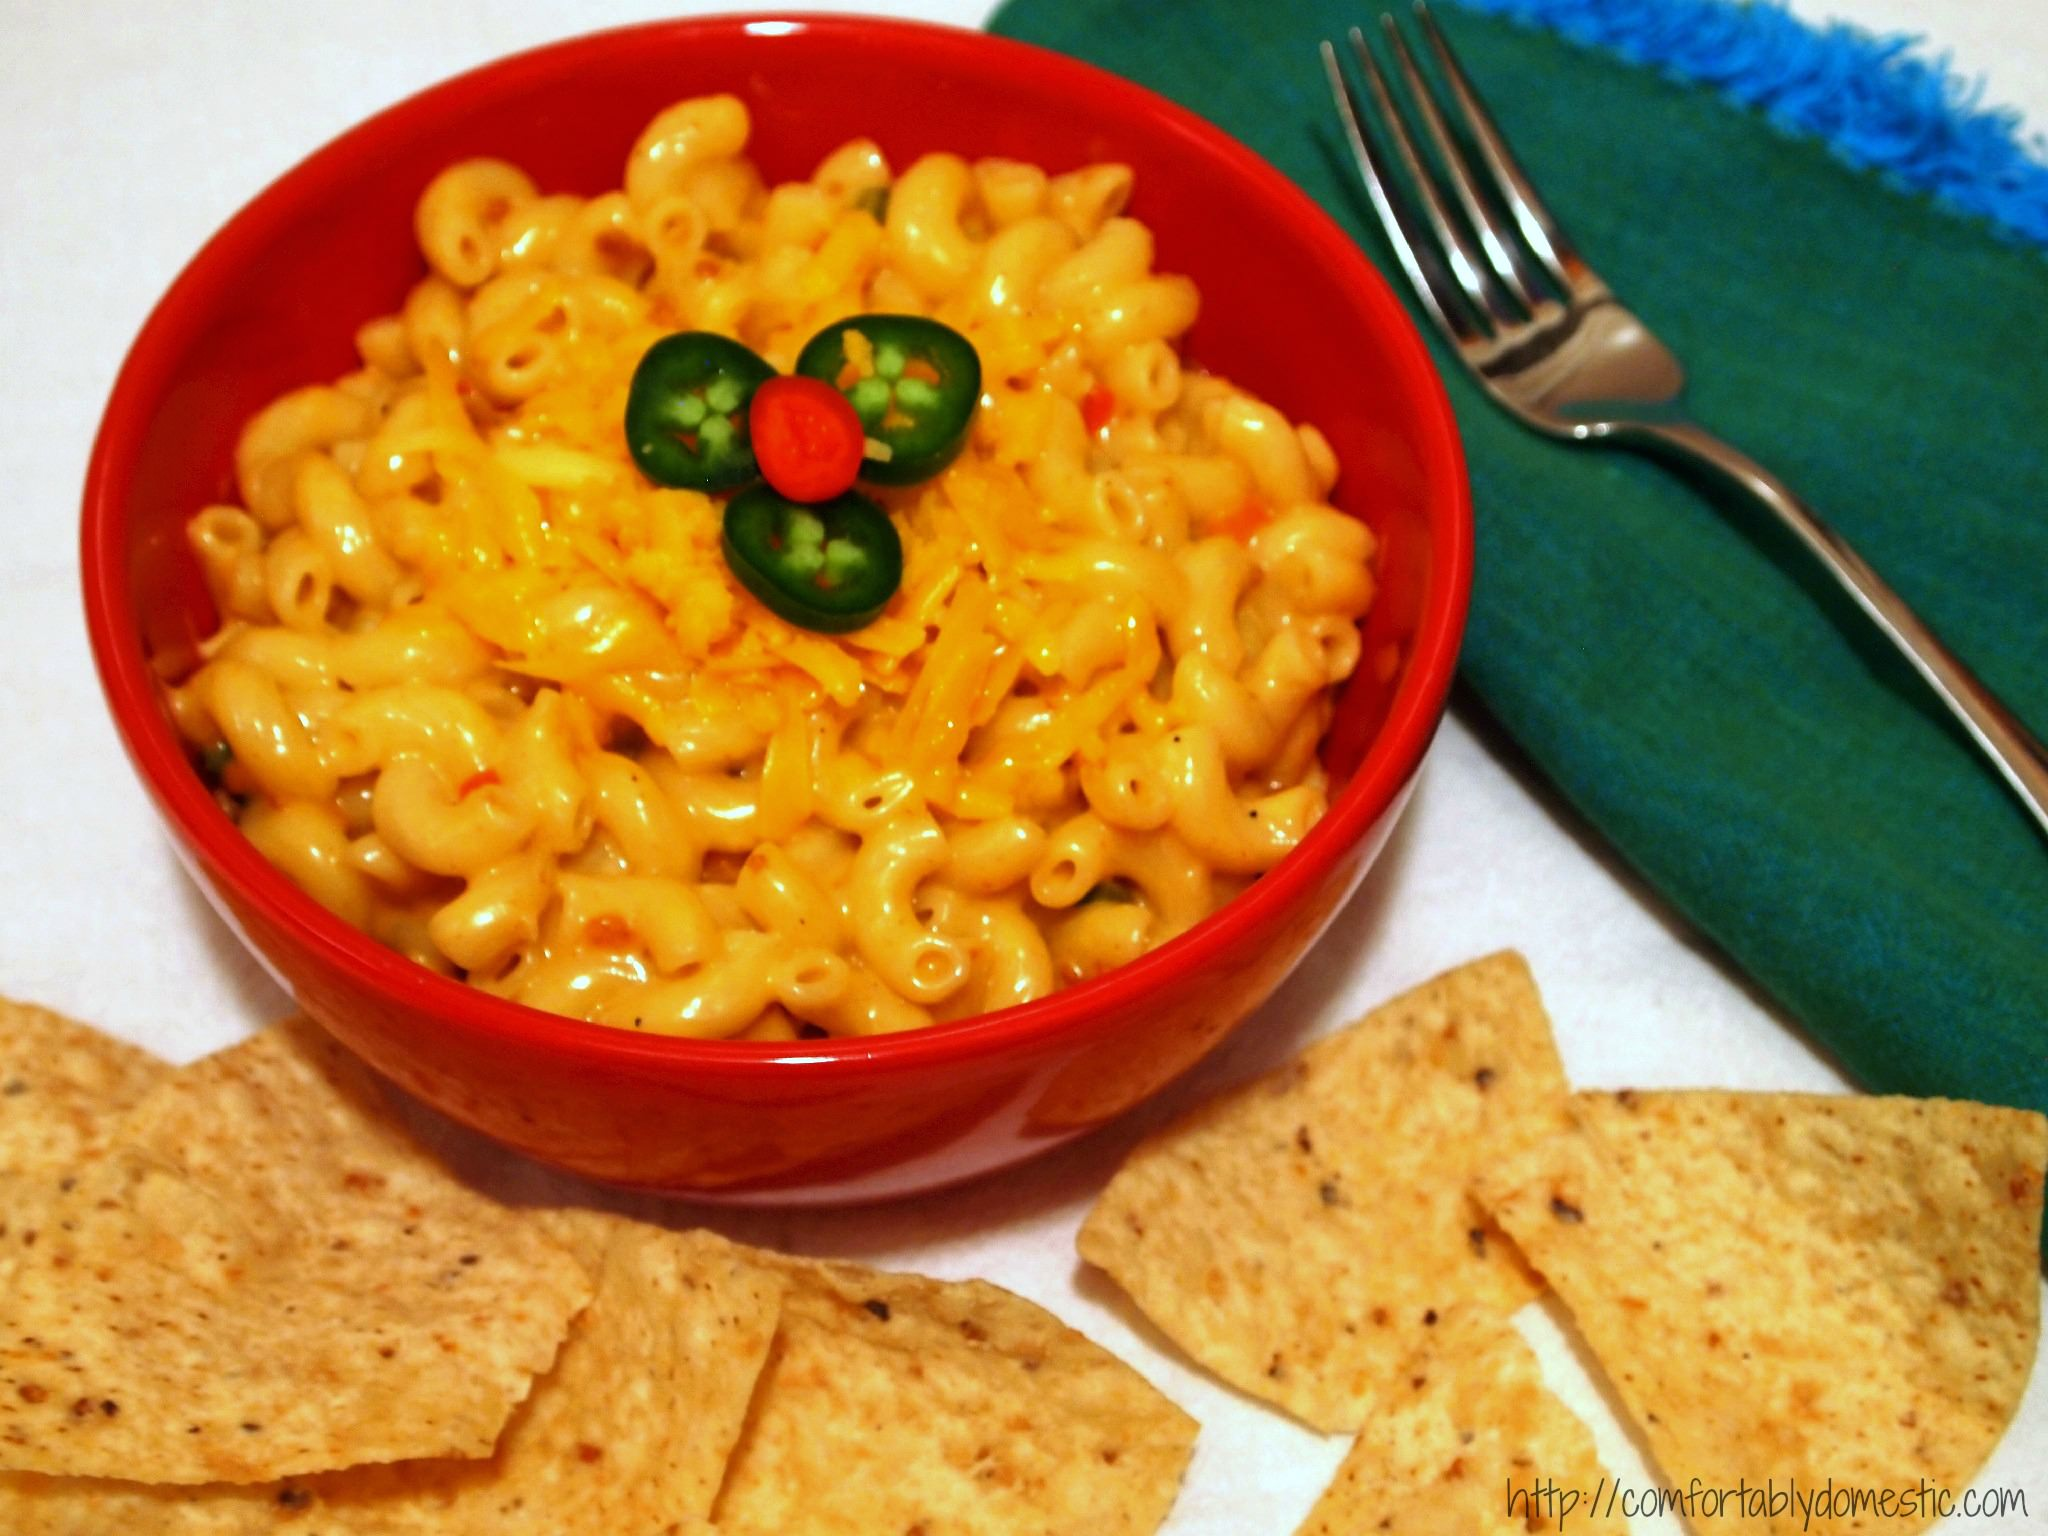 Queso macaroni and cheese is tender macaroni, drenched in a creamy Wisconsin cheese sauce, peppered with all the flavors of a queso dip. | ComfortablyDomestic.com